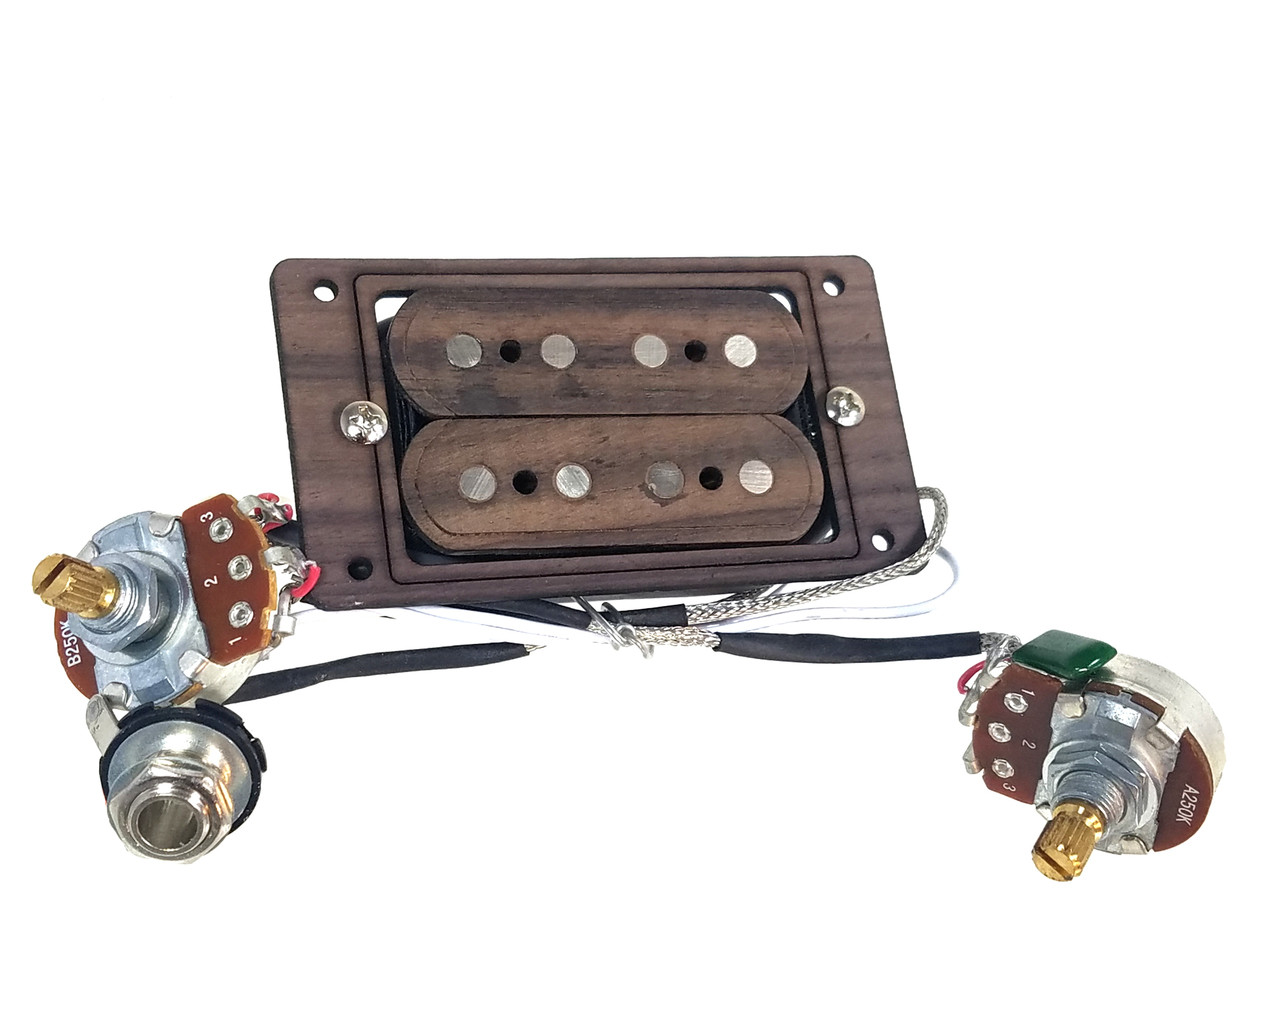 Deltabucker Deluxe 4 String Rosewood Cigar Box Guitar Humbucker Wiring Tone Volume Pickup Pre Wired